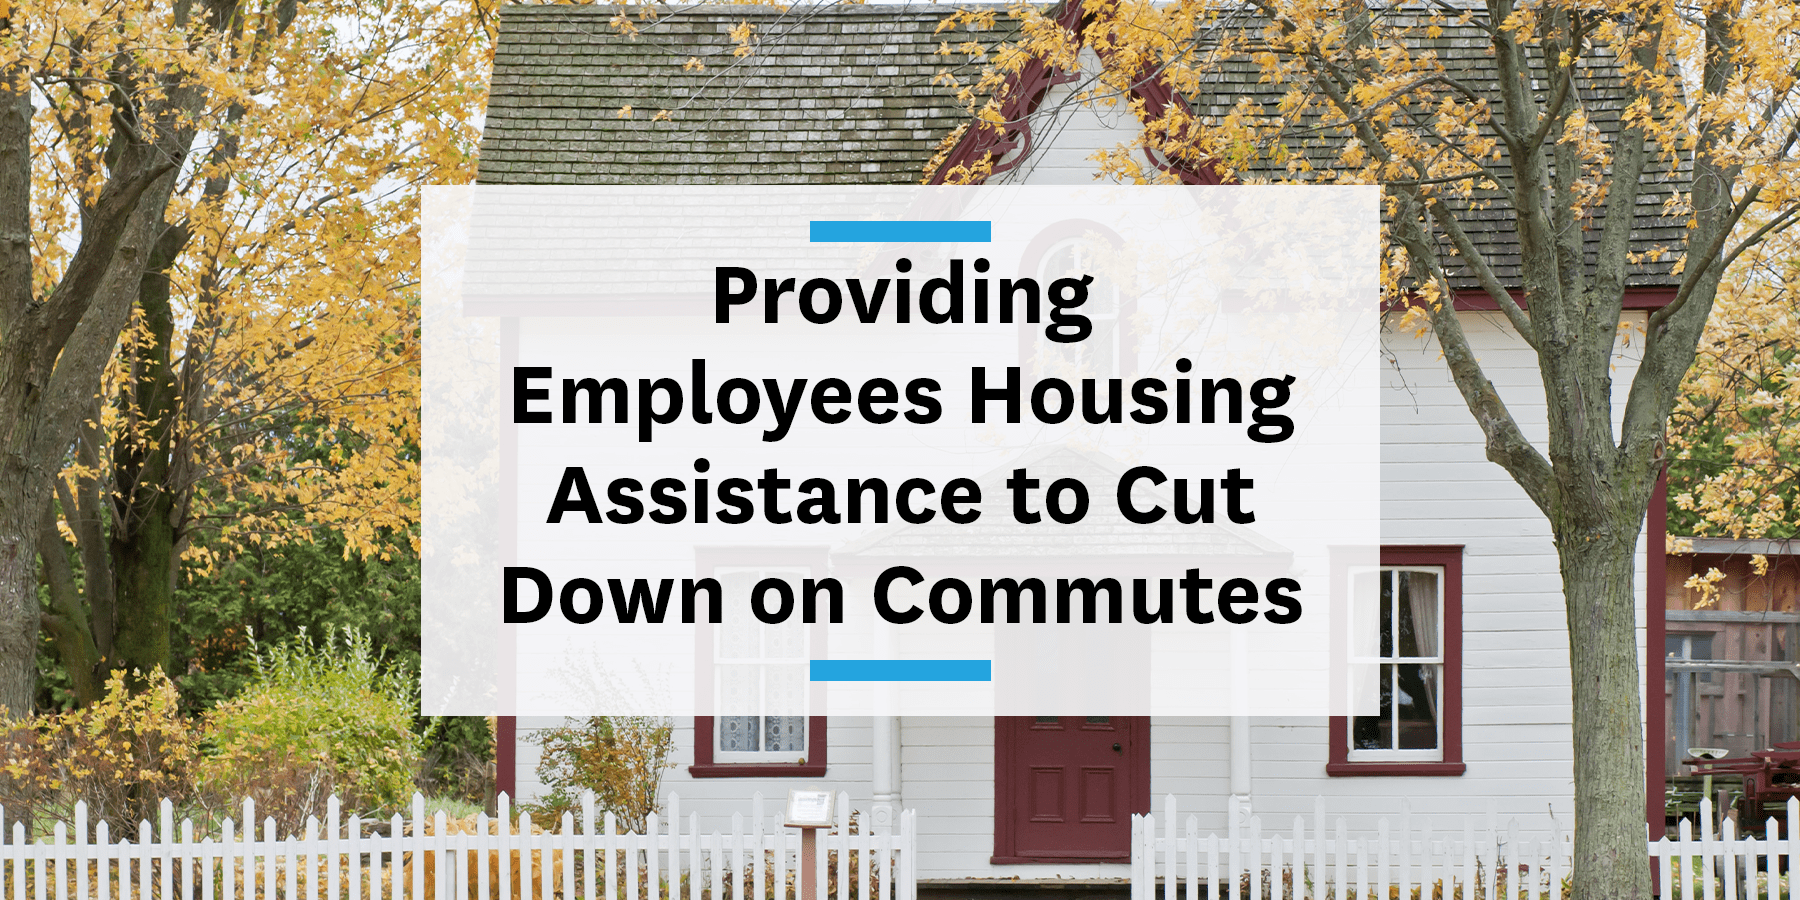 Feature images for providing employees housing assistance